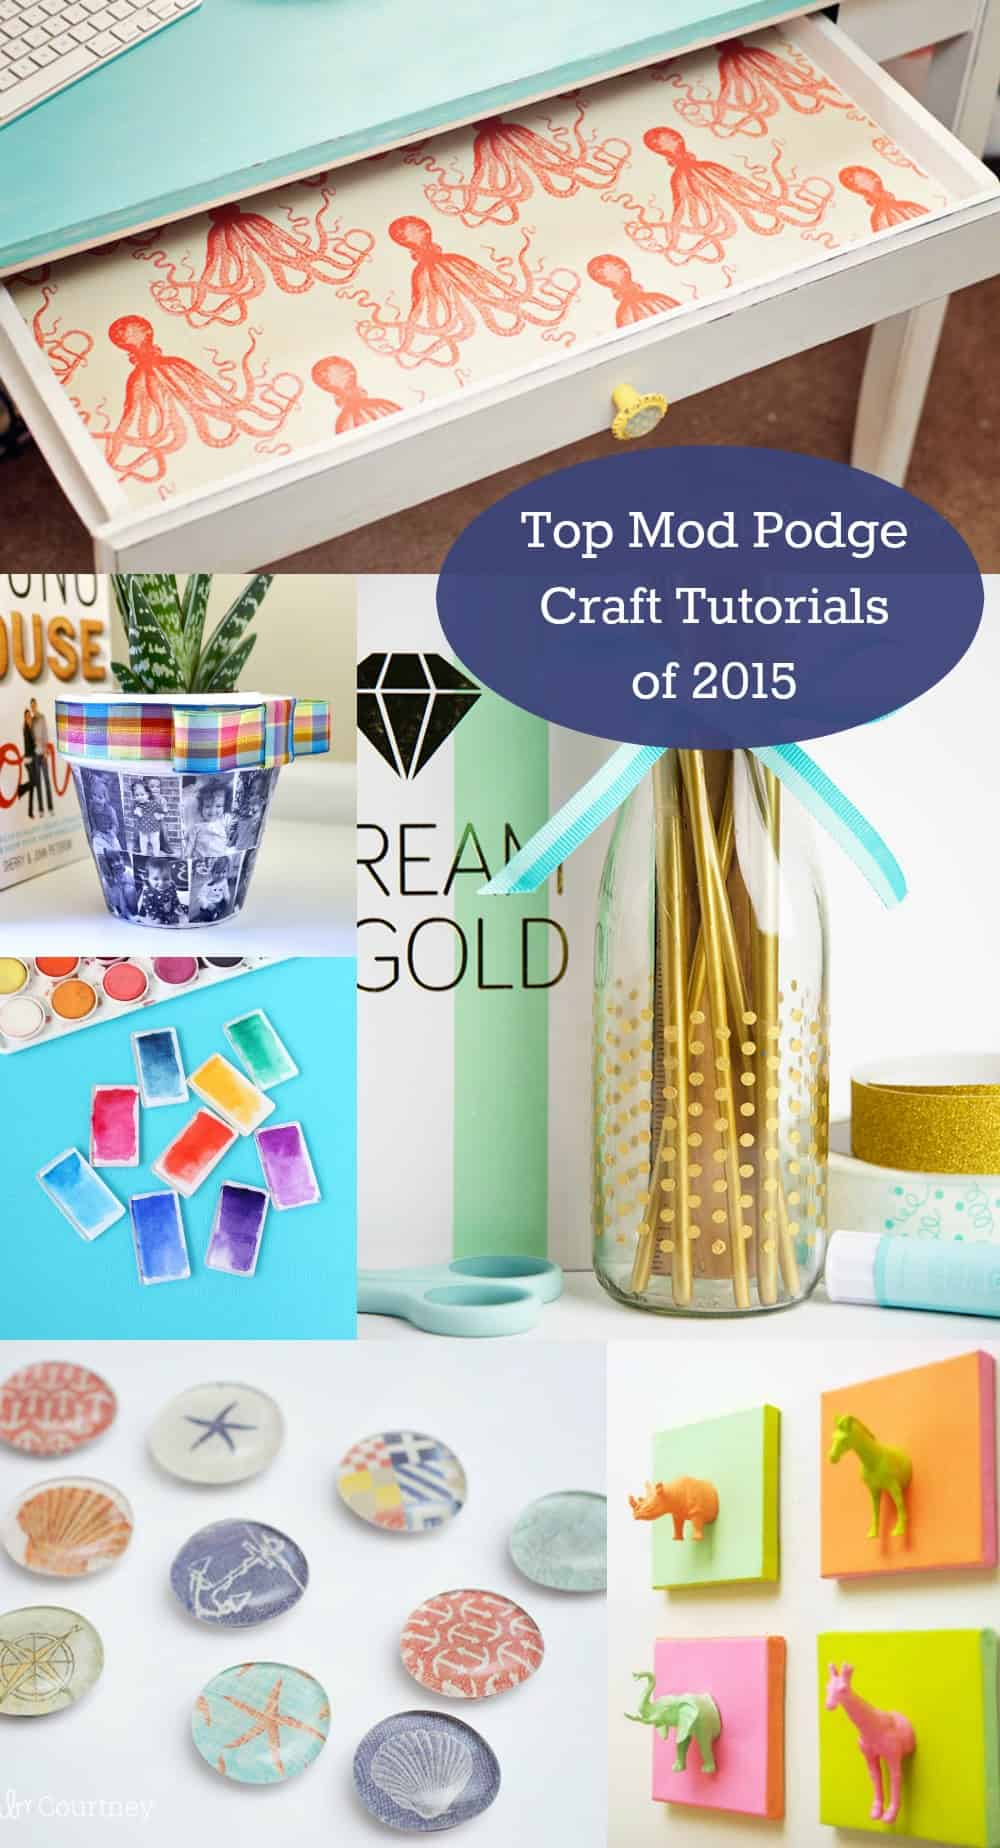 Do you love to Mod Podge? This retro craft is a blast, and it's great for beginners. Here are the top 10 Mod Podge craft tutorials of 2015.